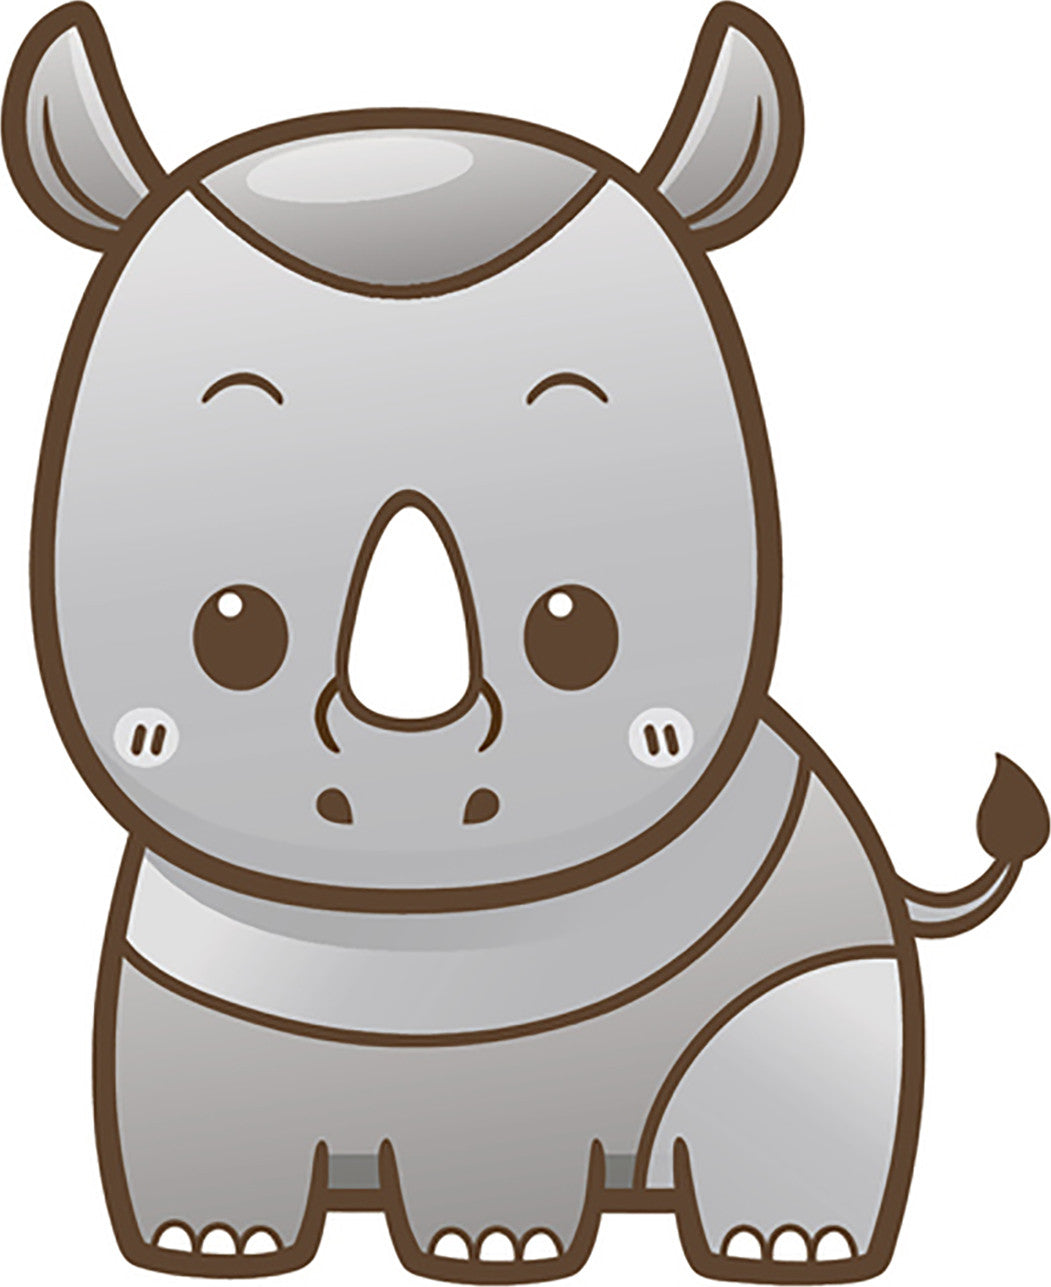 Cute Simple Kawaii Wild Animal Cartoon Icon - Rhino Vinyl Decal Sticker